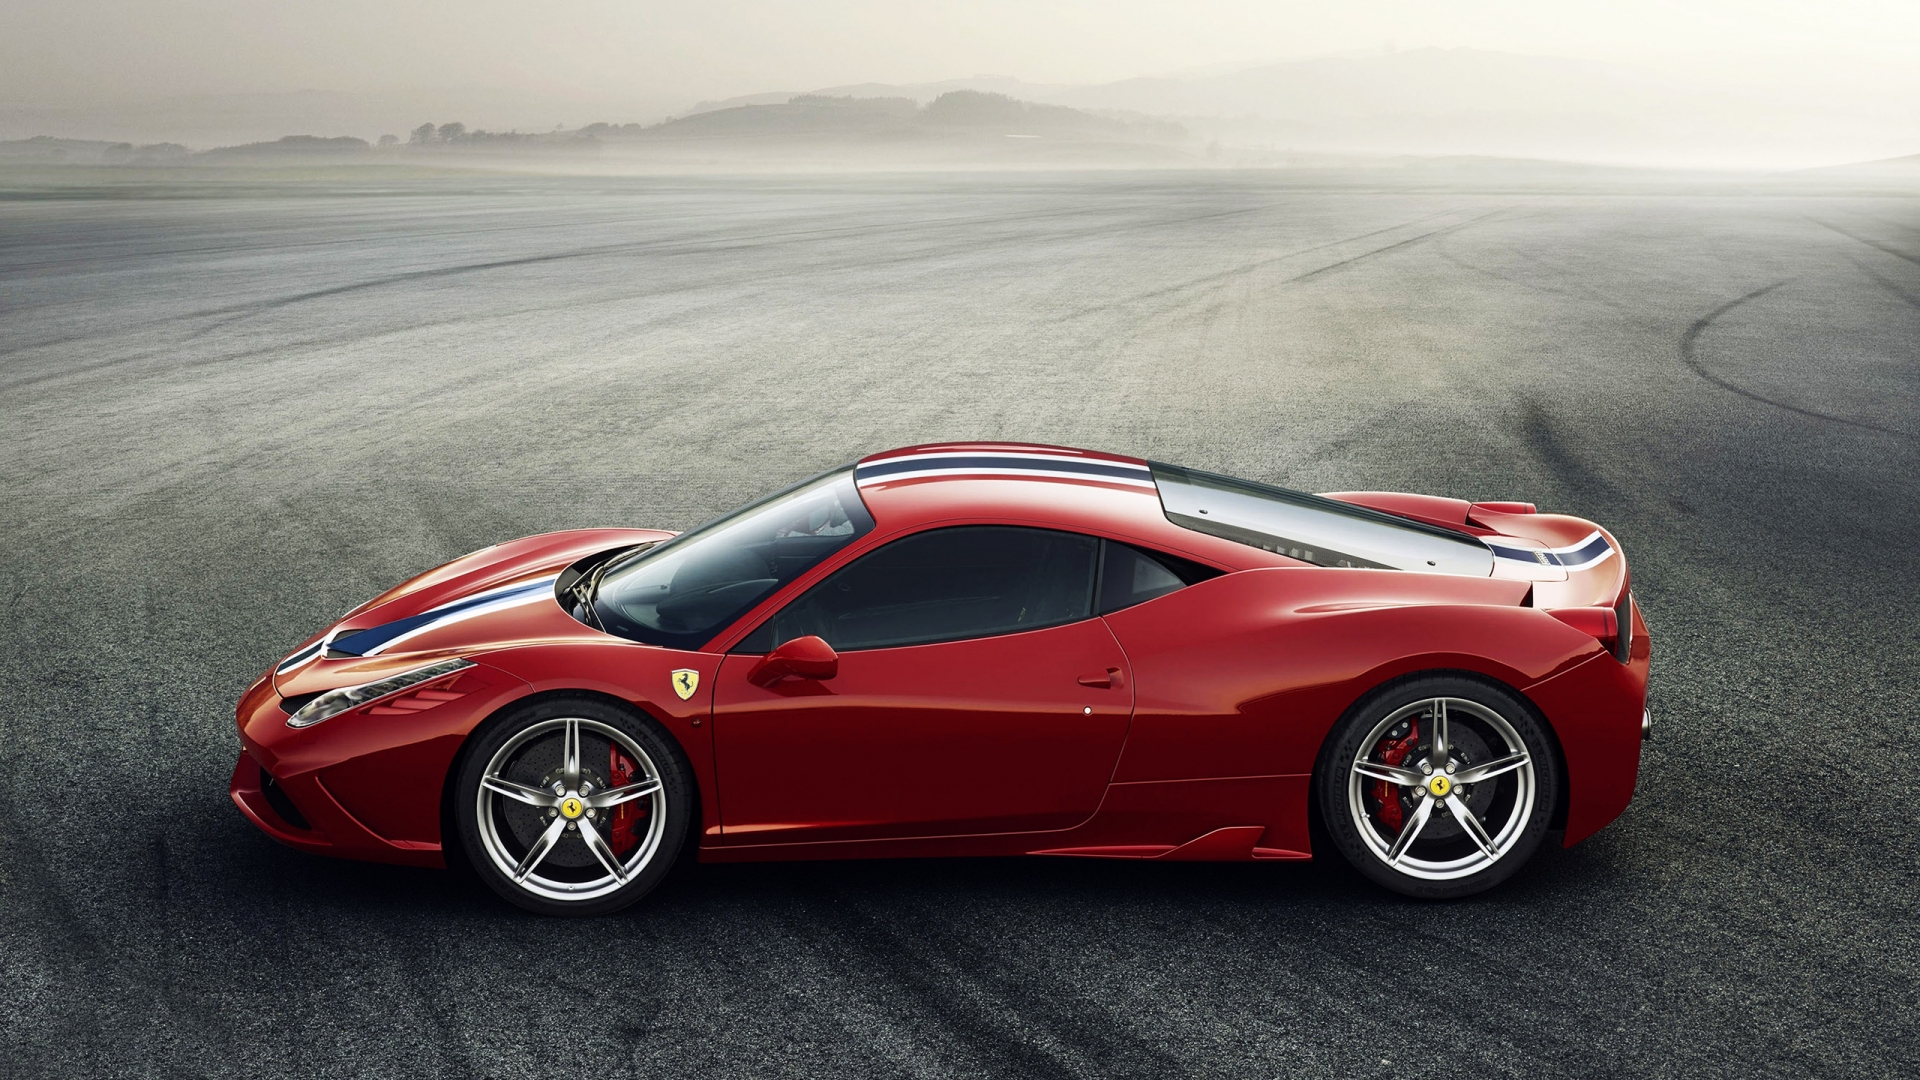 Red Ferrari 458 Speciale for 1920 x 1080 HDTV 1080p resolution